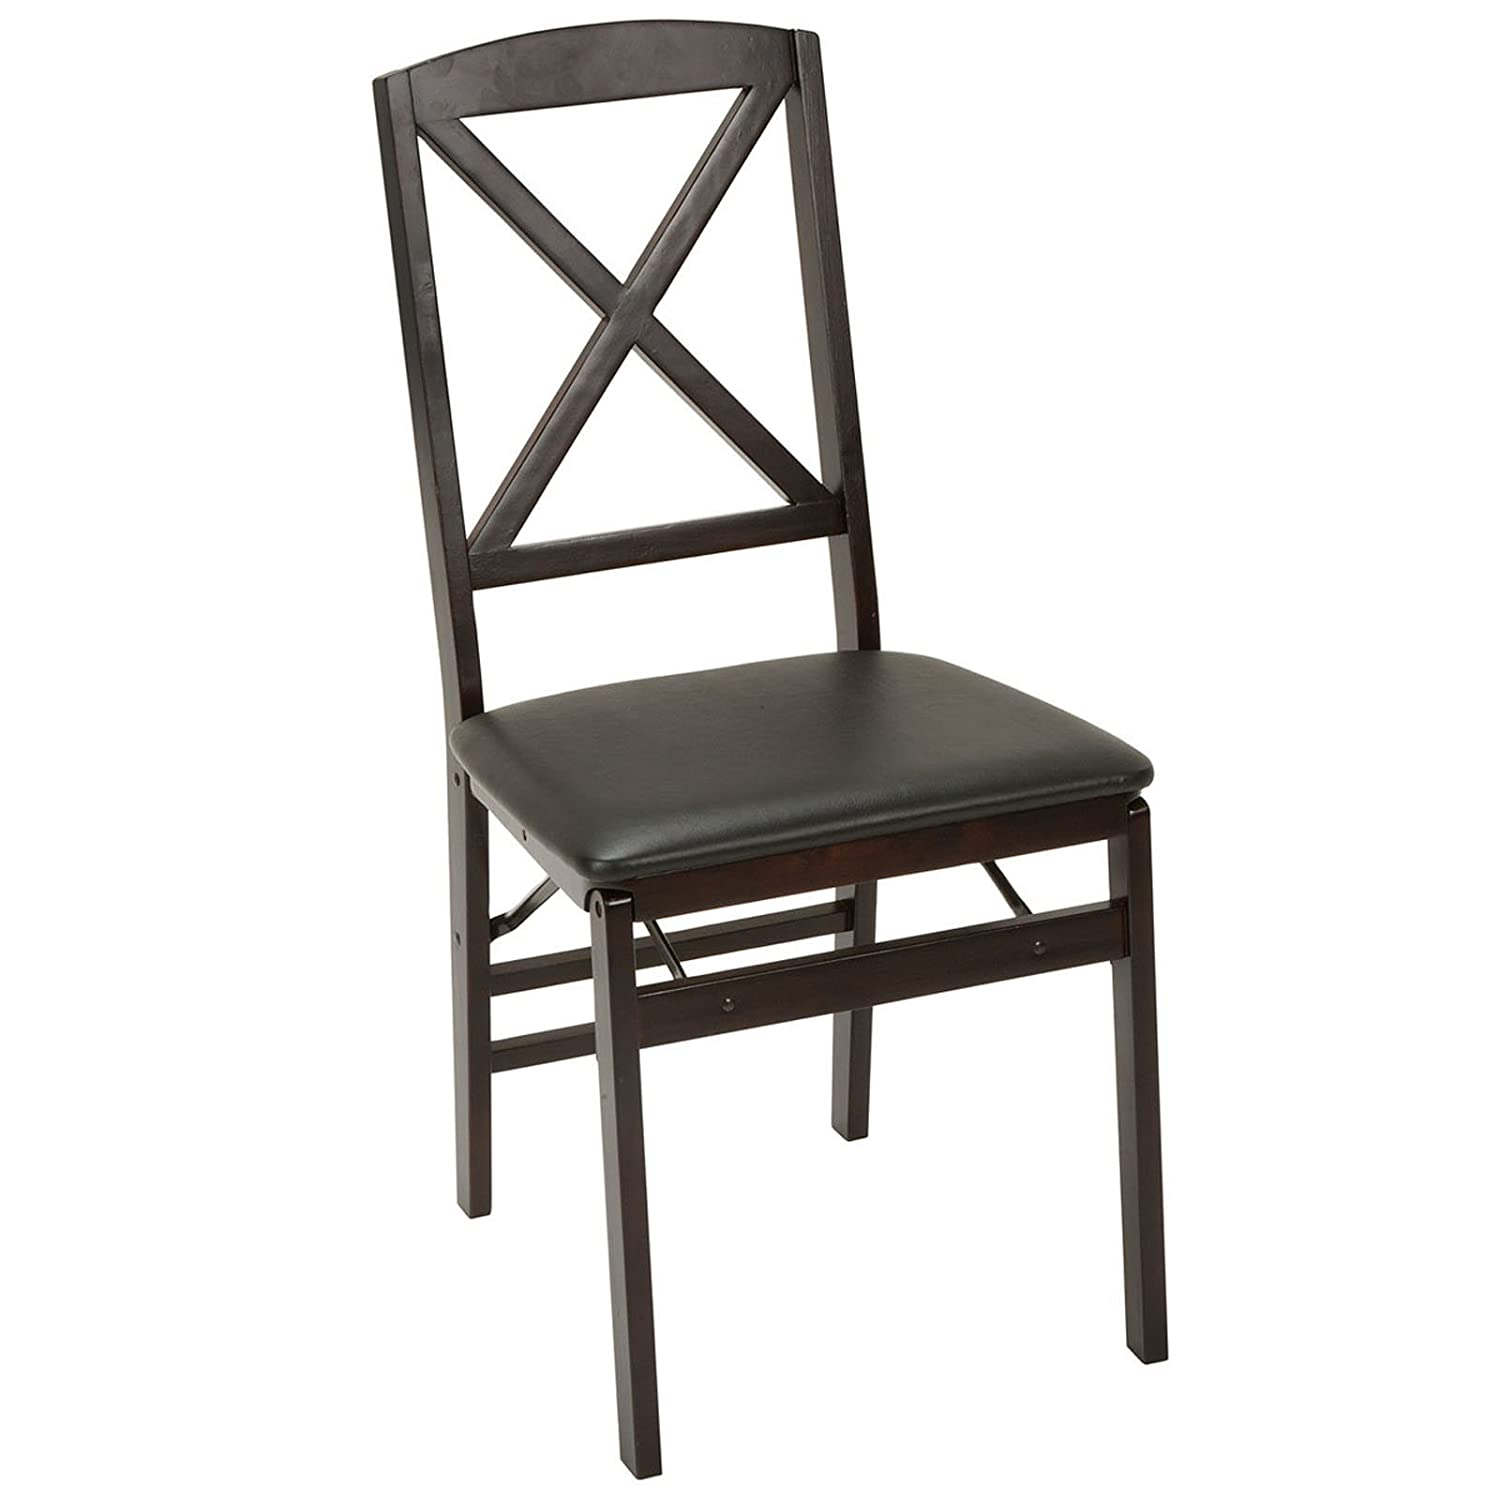 Wood padded folding chairs - Amazon Com 2 New Cosco Wood Vinyl Commercial Folding Chair 2 Pack Pair Chairs